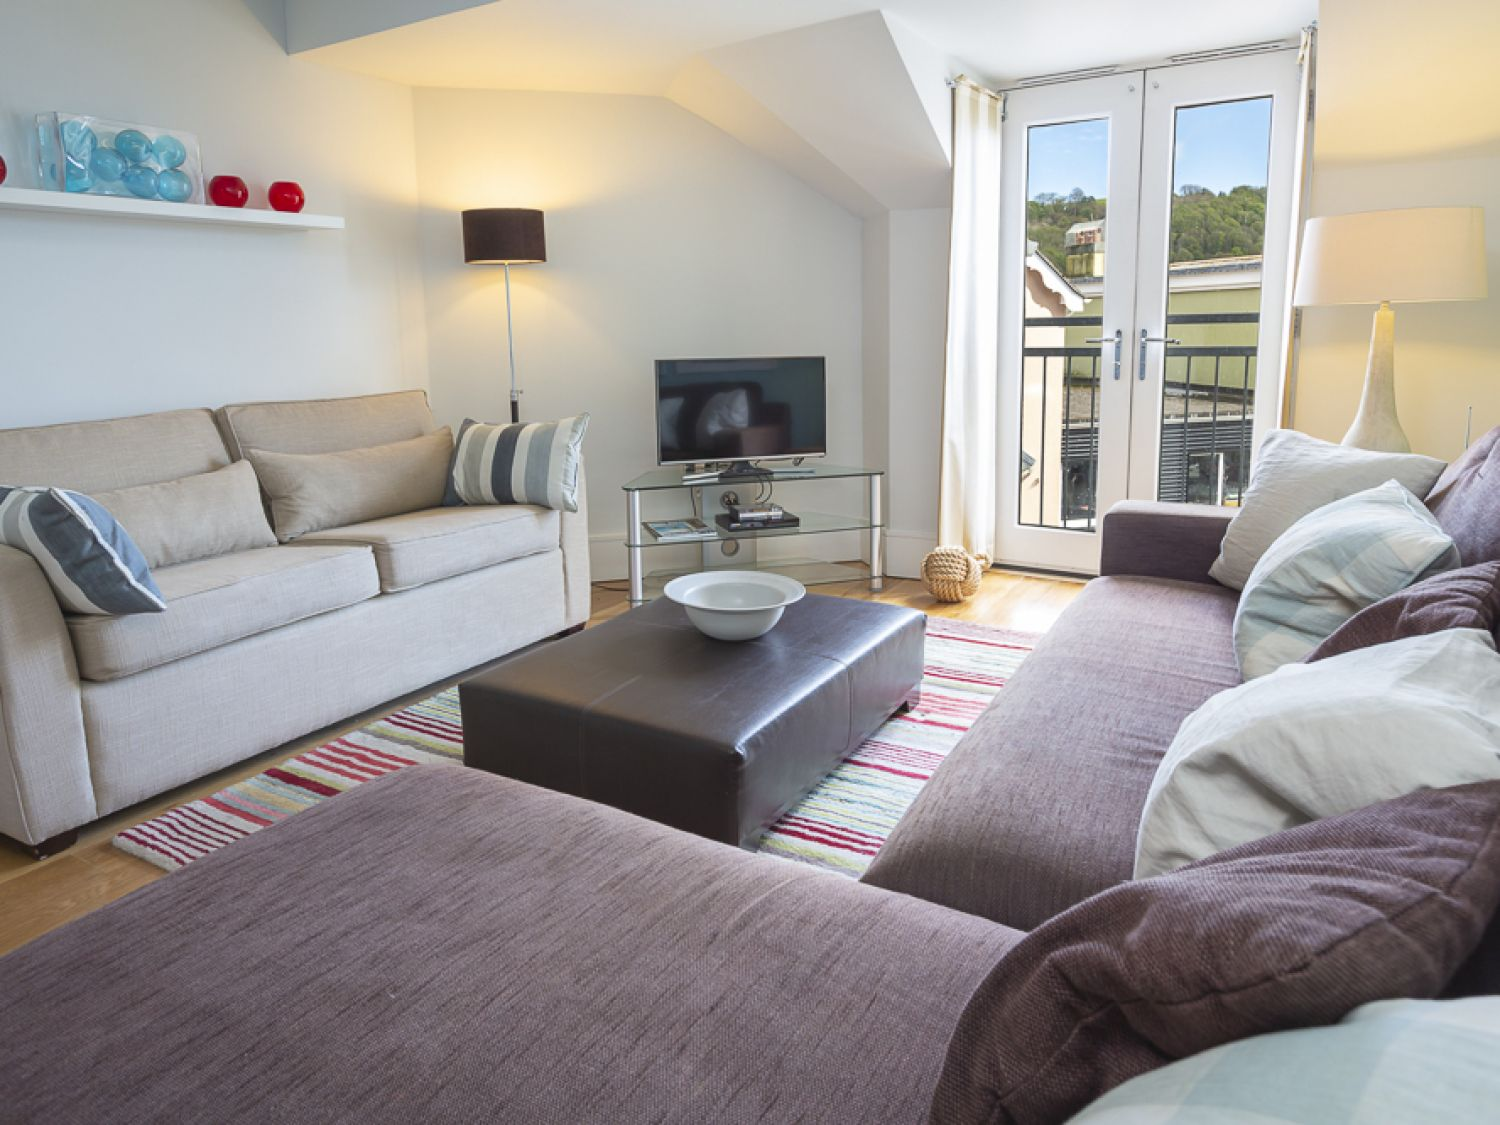 44 Dart Marina - Devon - 995041 - photo 1